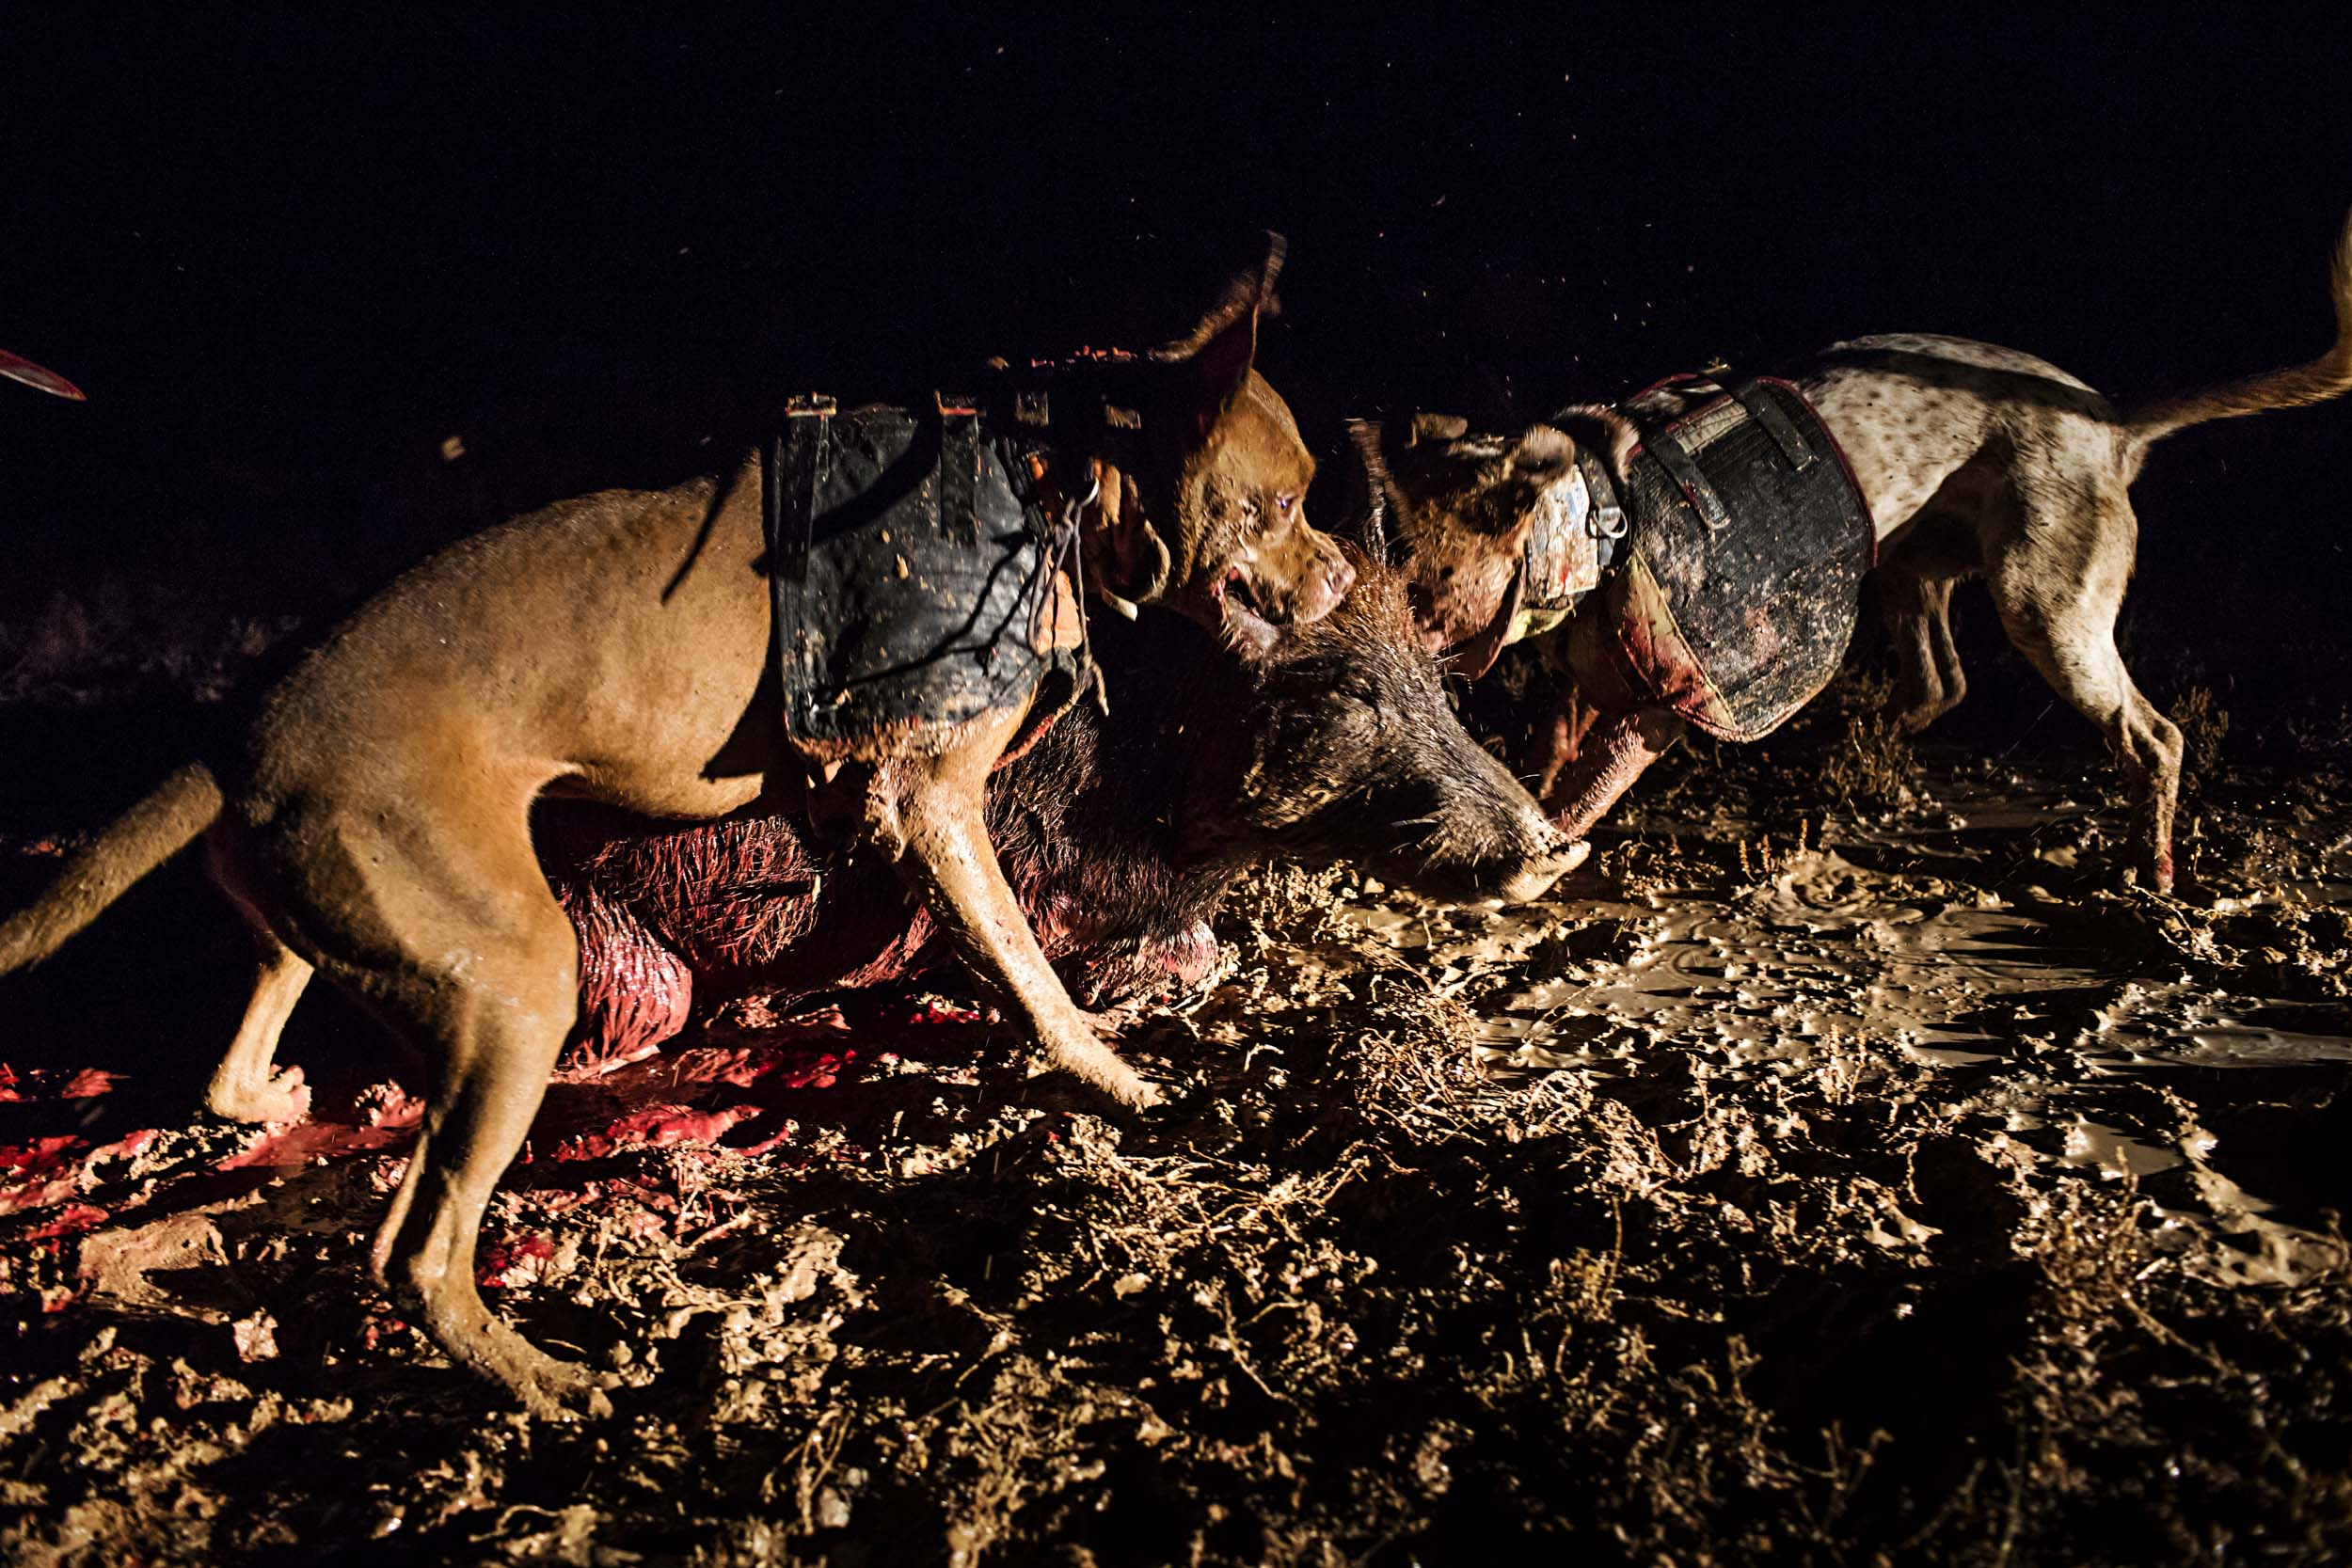 Hunting dogs subdue a wild boar on a nighttime hunt in Wilcannia, NSW.